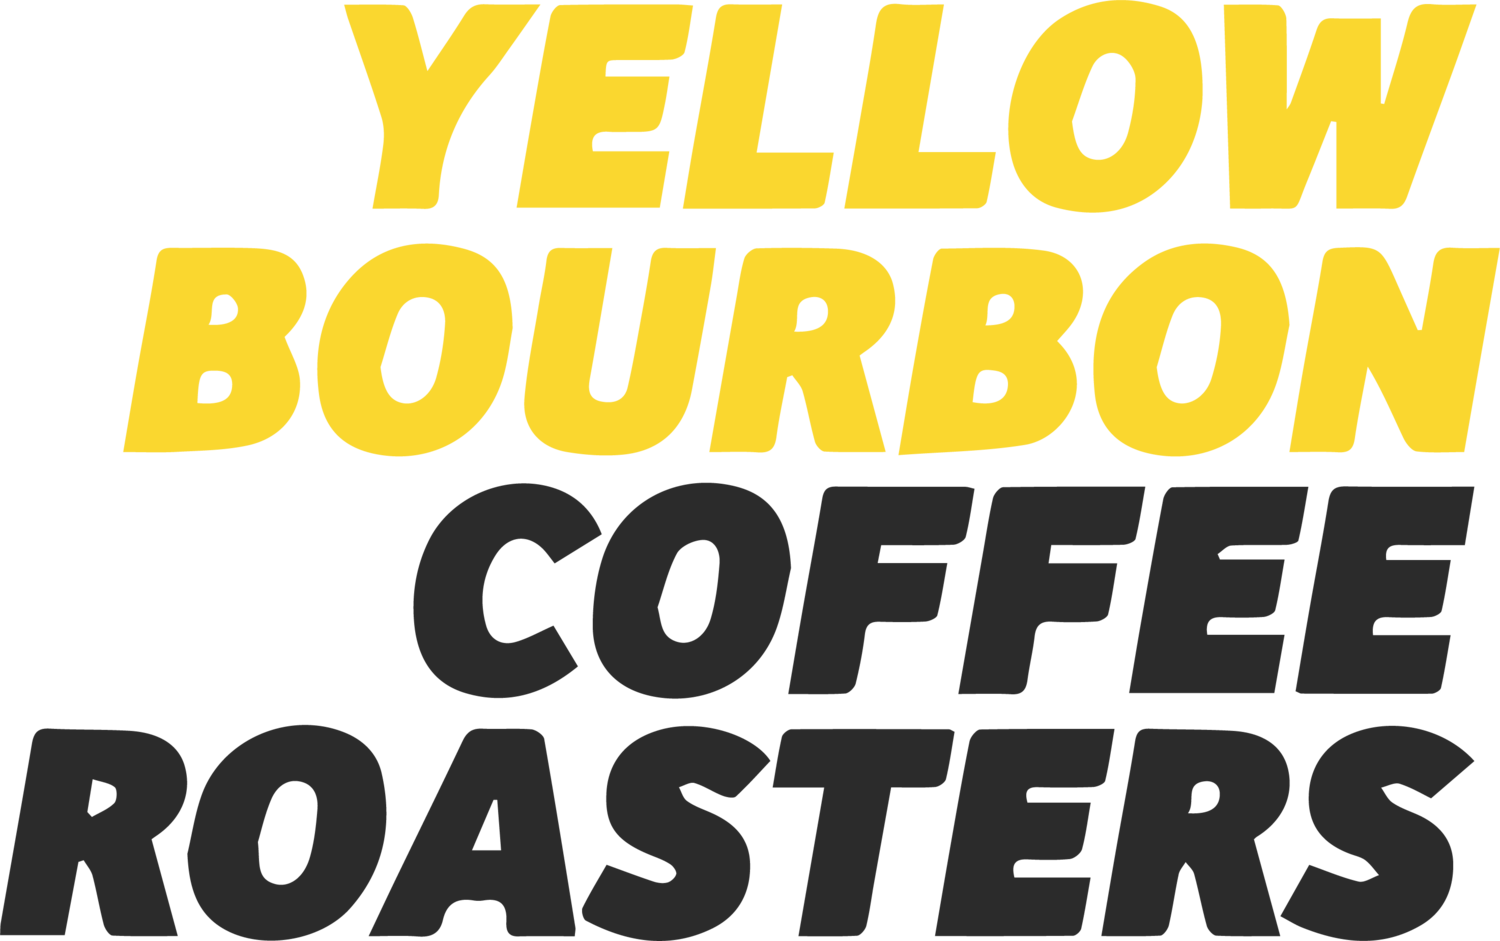 Yellow Bourbon Coffee Roasters